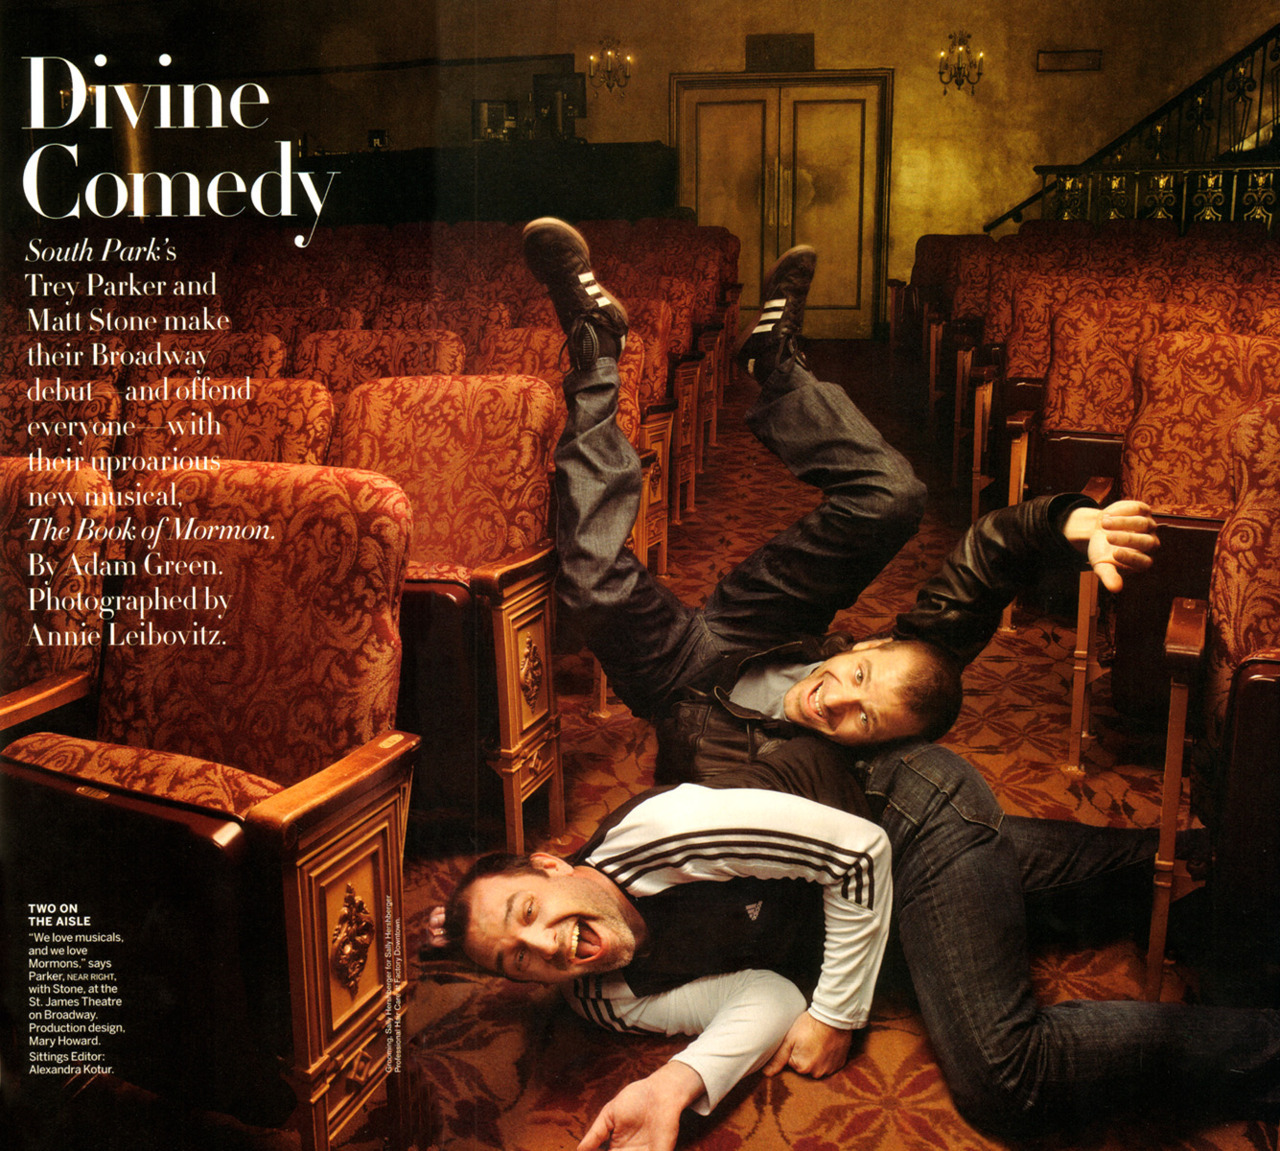 Trey Parker & Matt Stone - Vanity Fair by Annie Leibovitz